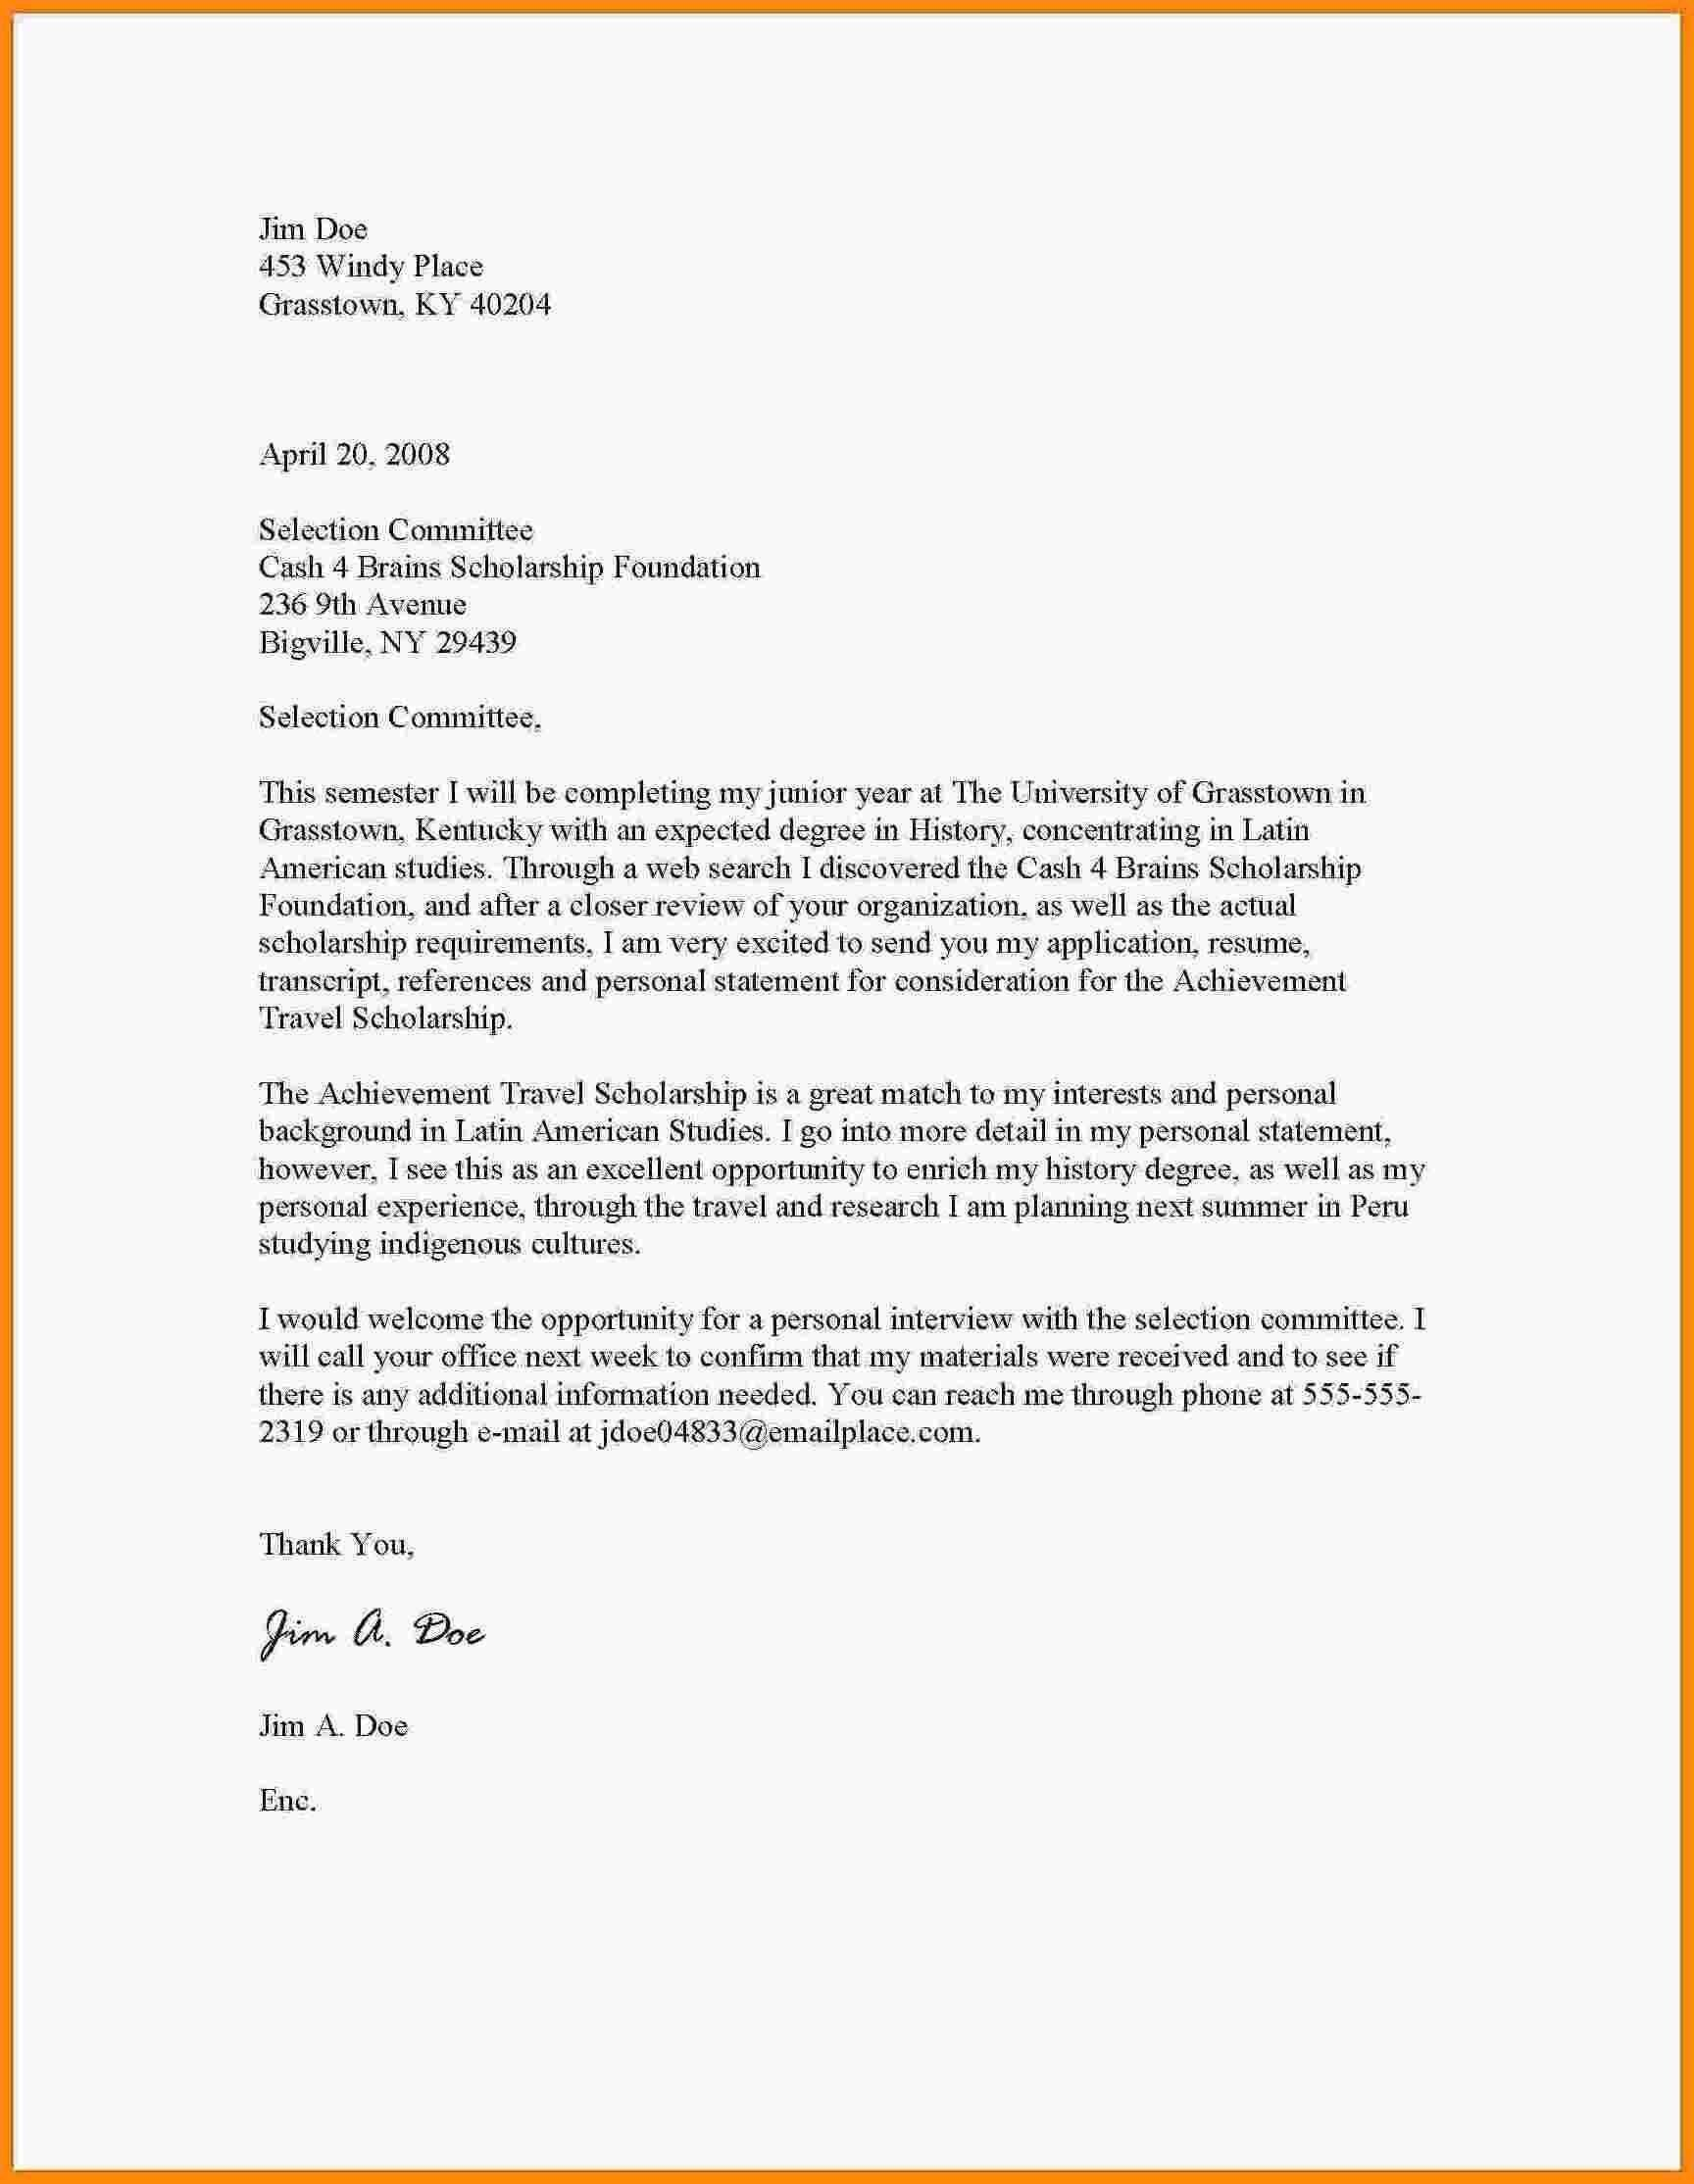 Sample Scholarship Thank You Letter Unique 5 Free Motivation For Scholar In 2020 Application Examples Essay Motivational Scholarship-pdf How To Write